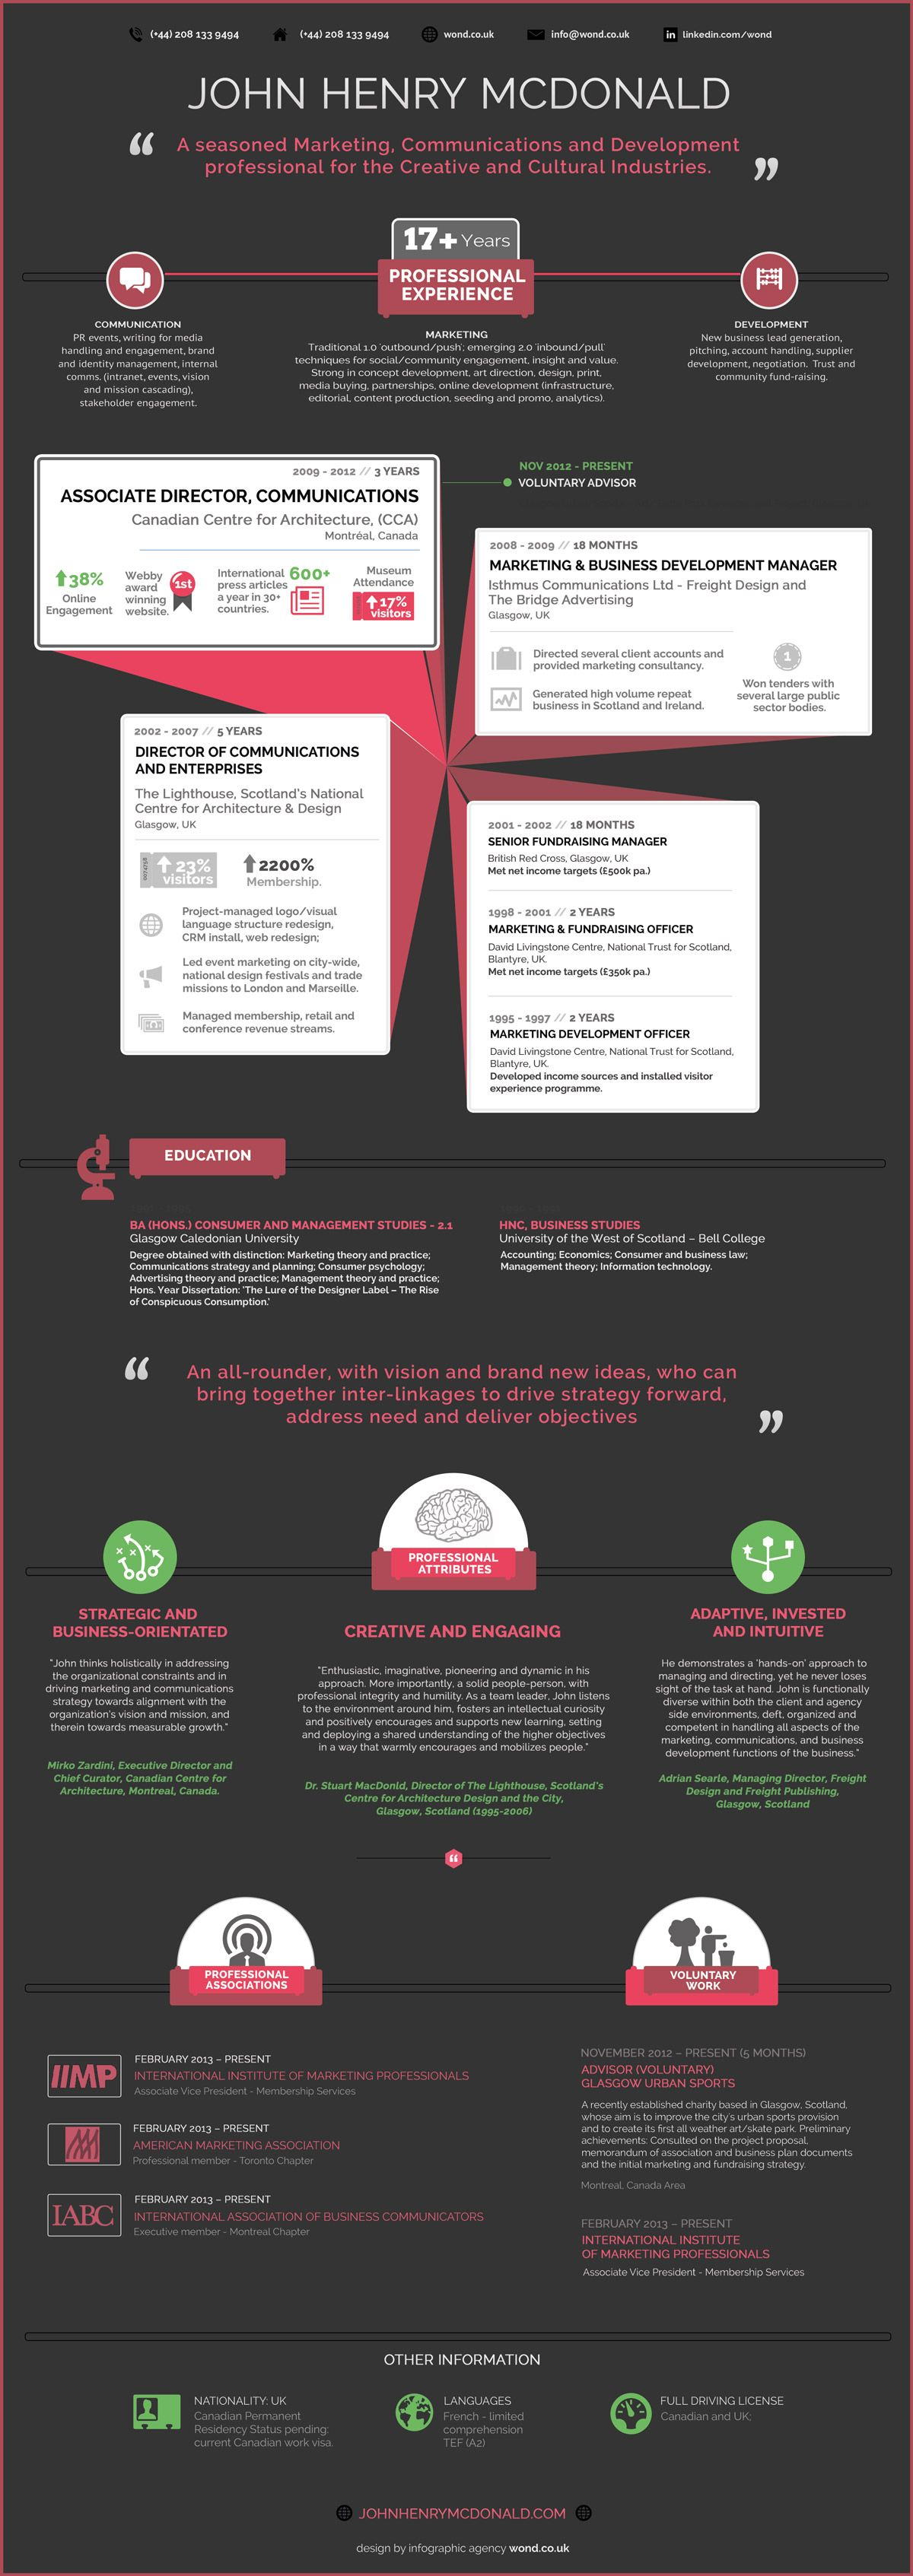 Infographic Resume Template Resume Designs Infographic Resume